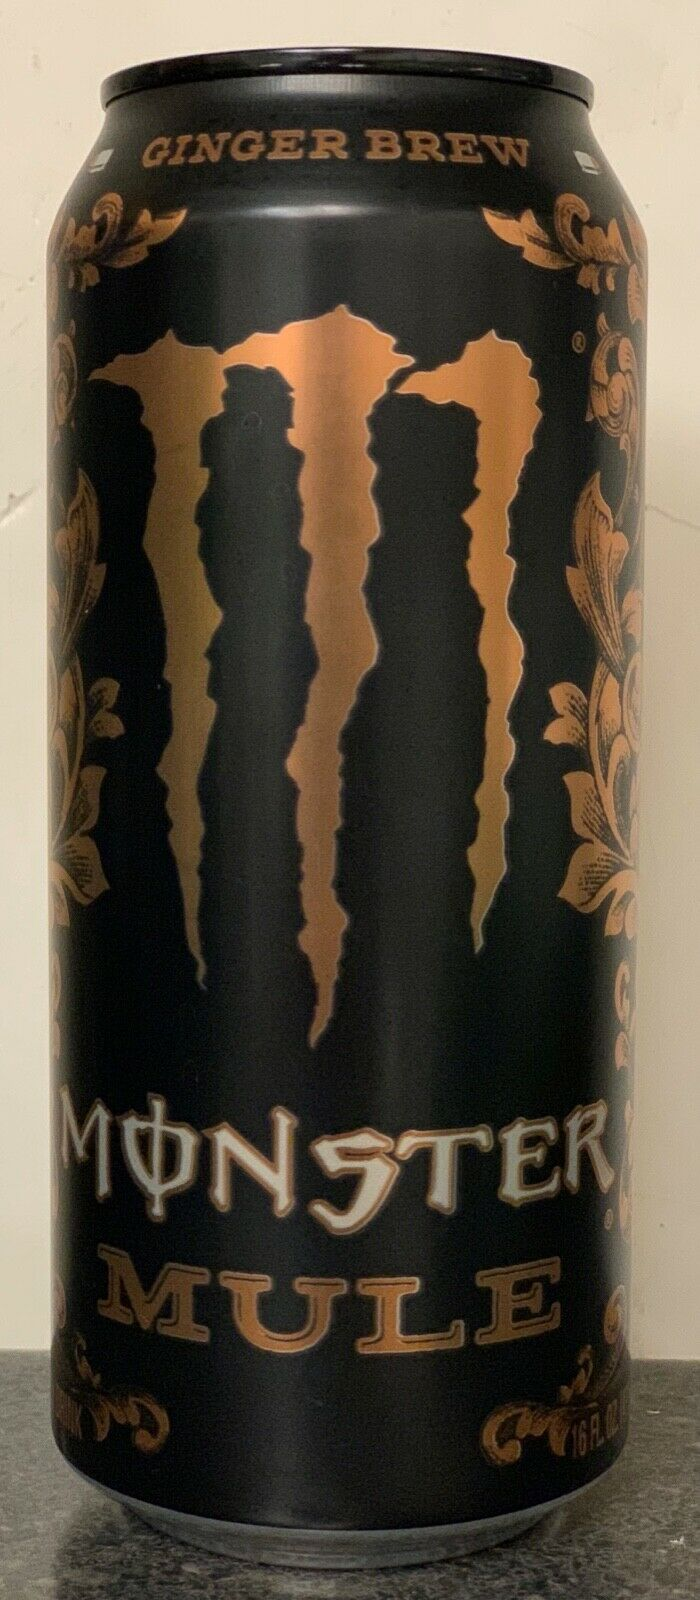 Lot 2 Ginger Brew Monster Mule Beverage Energy Drink 16 Oz Can Unopened For Sale Online Ebay See more of new mexico monster mule deer on facebook. lot 2 ginger brew monster mule beverage energy drink 16 oz can unopened